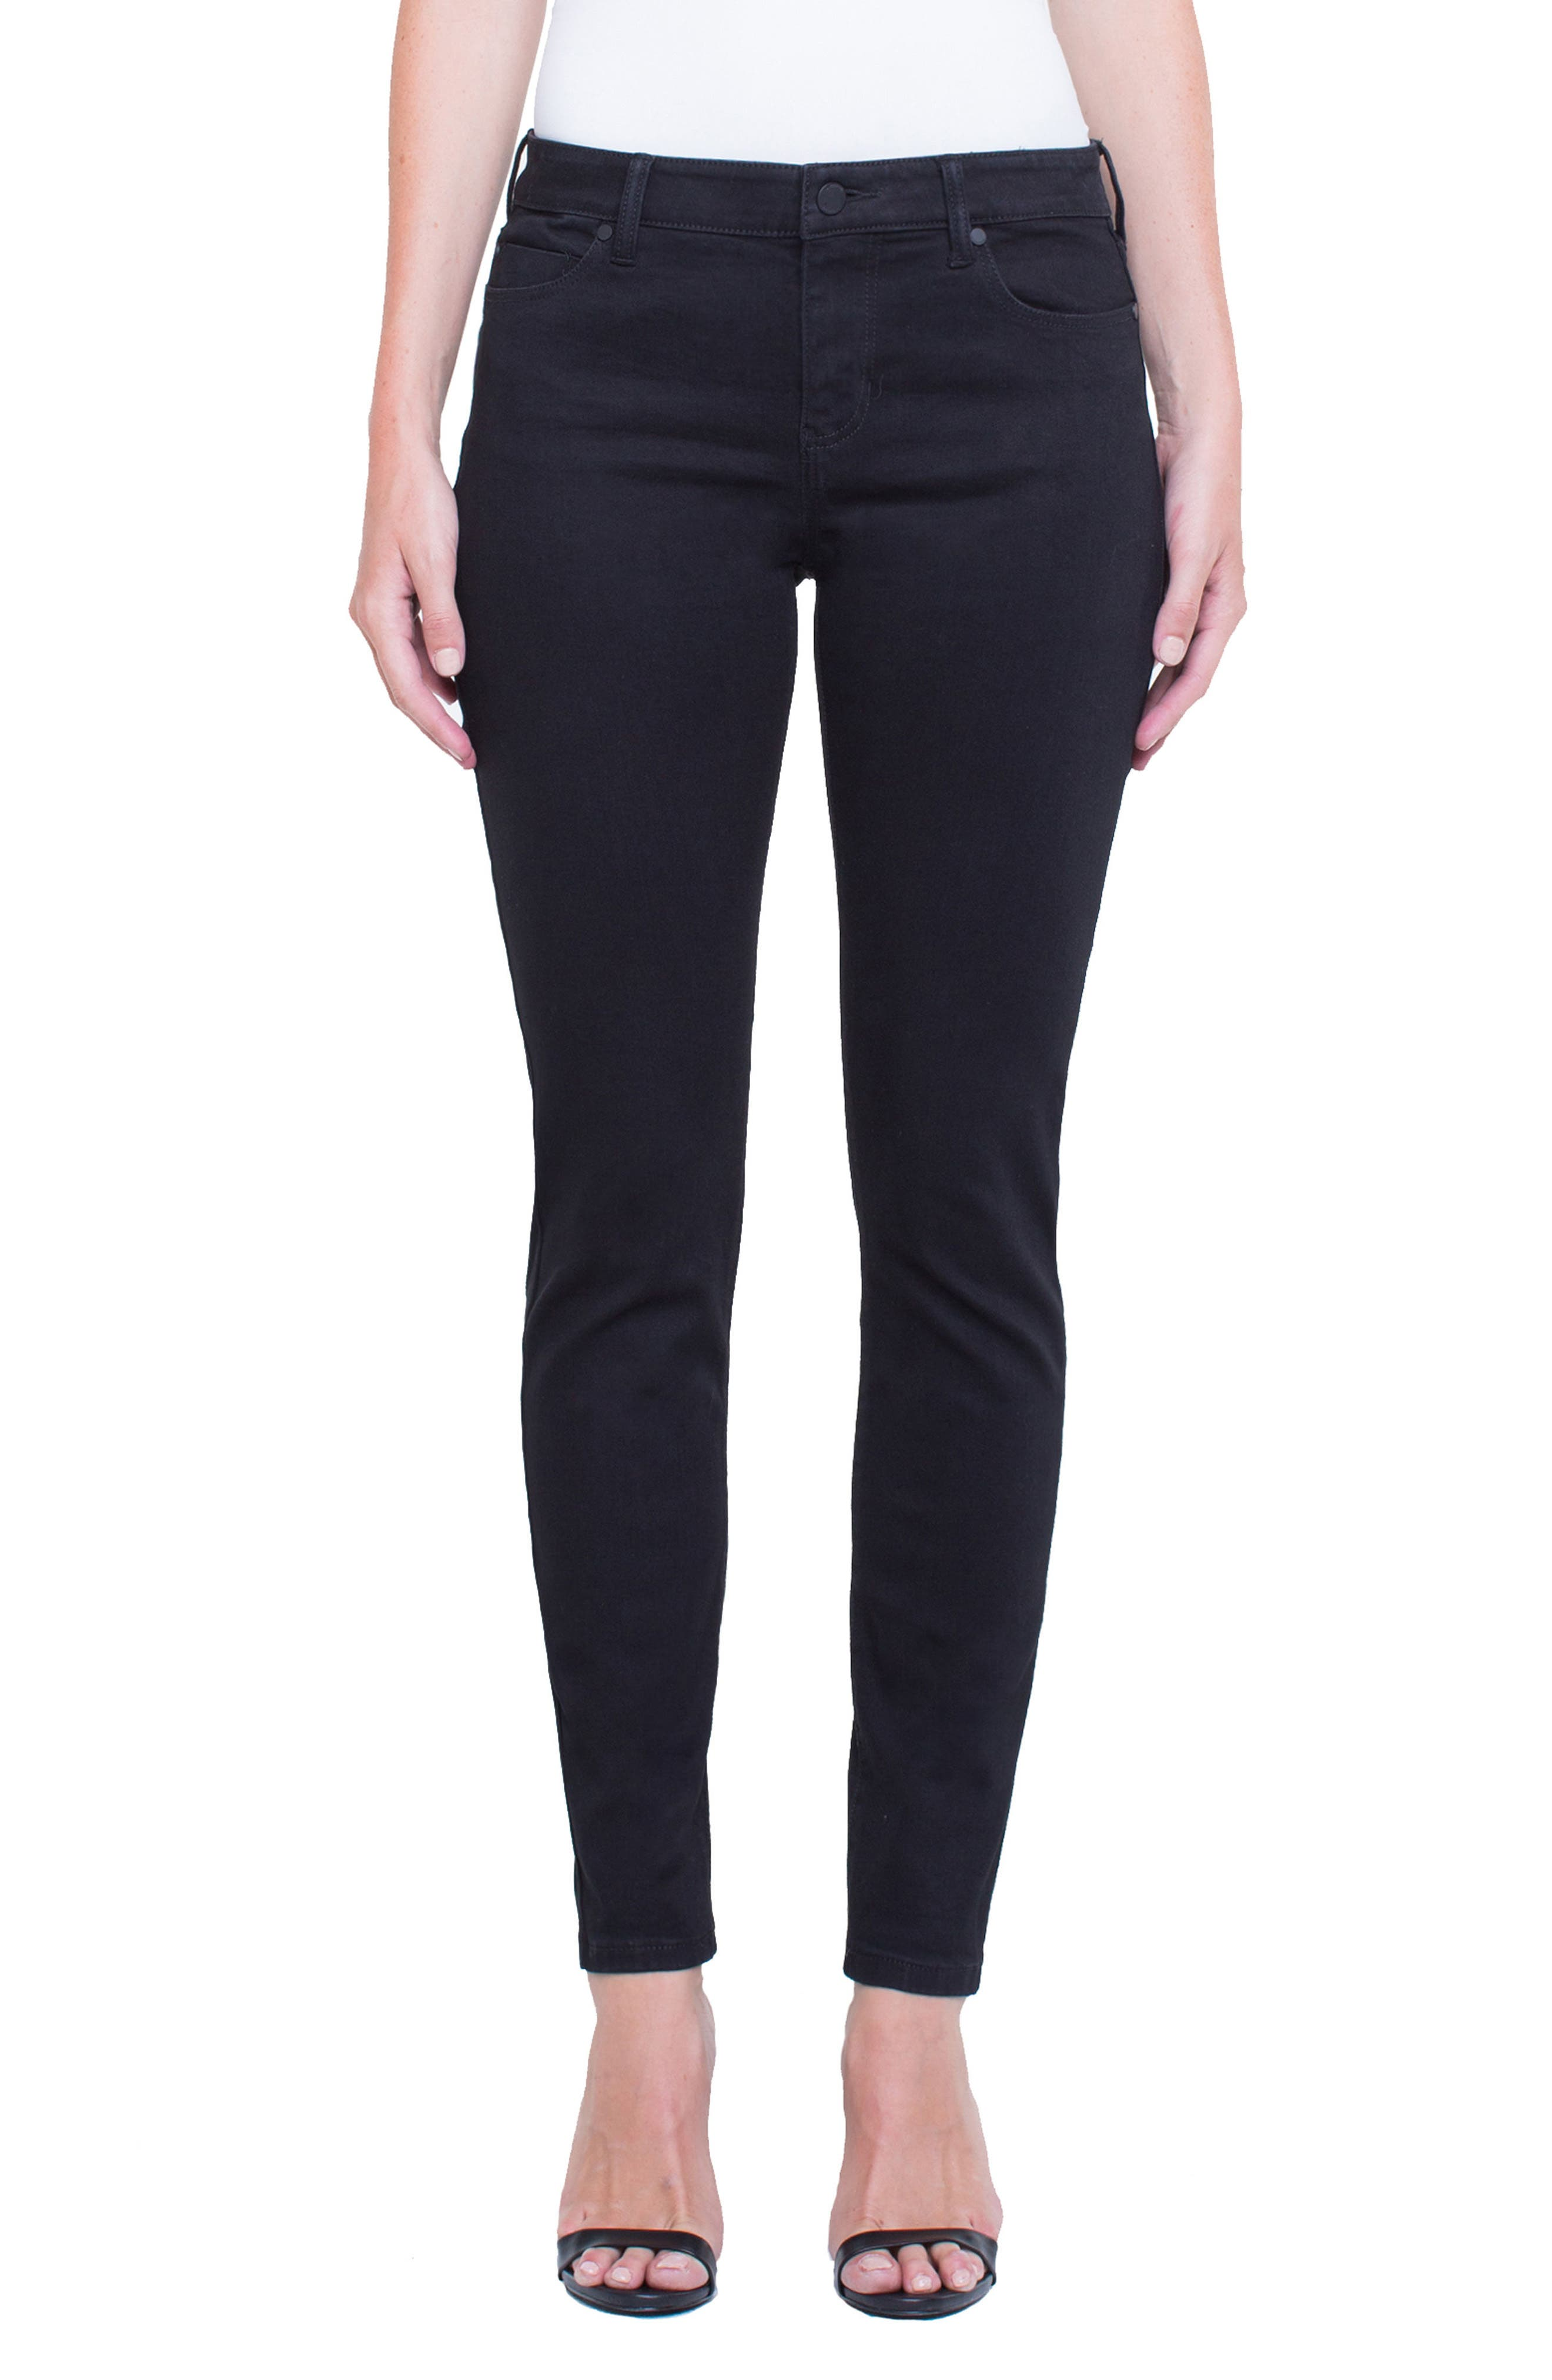 Liverpool Jeans Company Abby Mid Rise Soft Stretch Skinny Jeans (Regular & Petite)